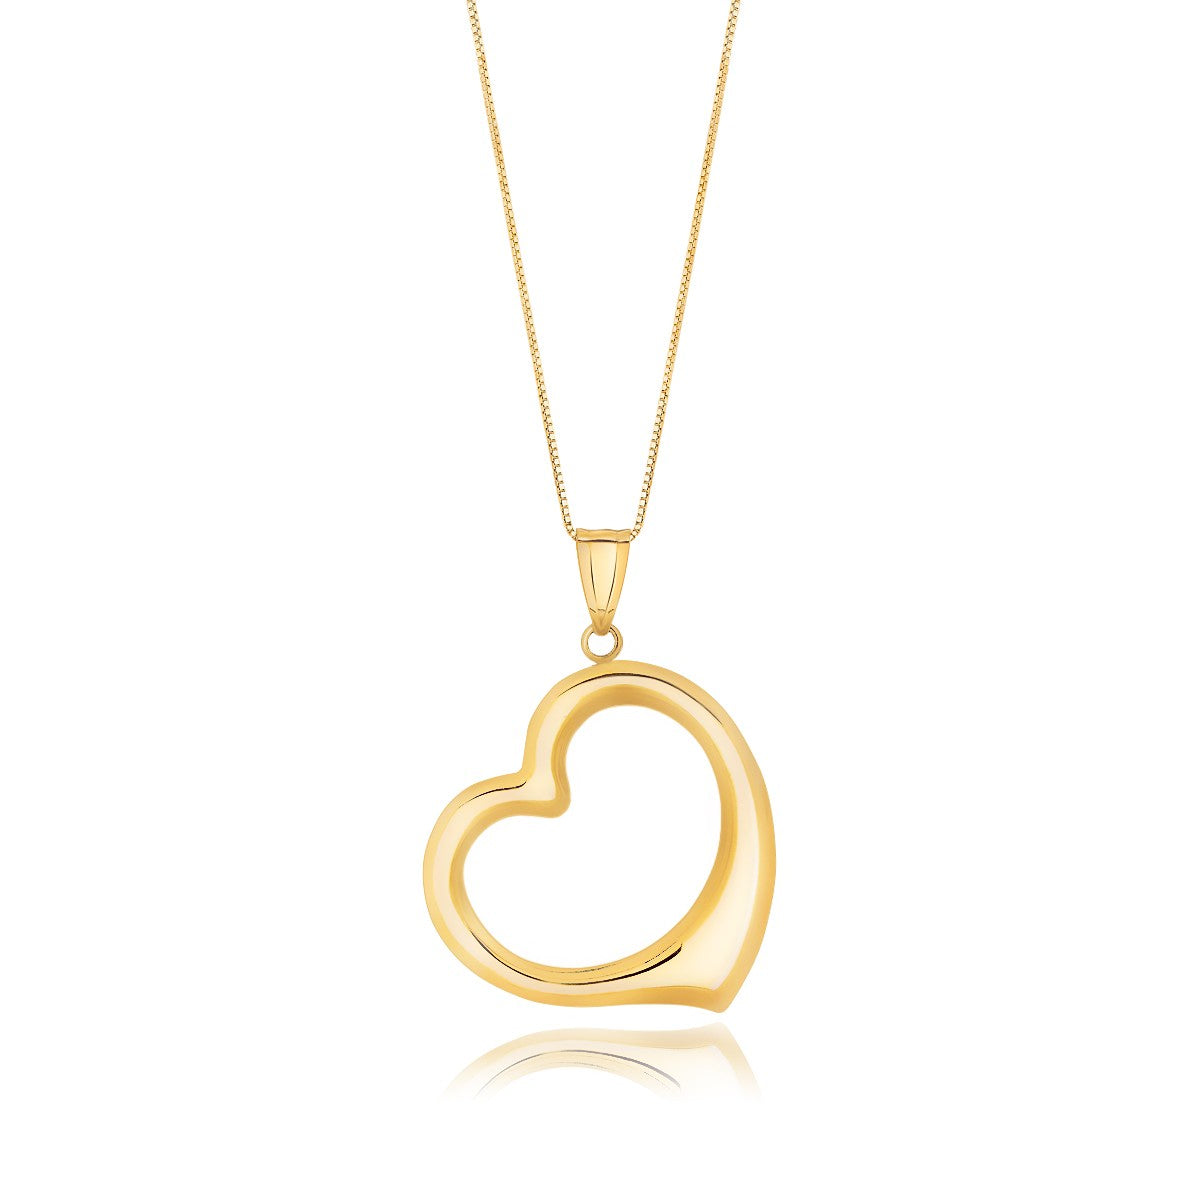 14k Yellow Gold Floating Heart Drop Pendant